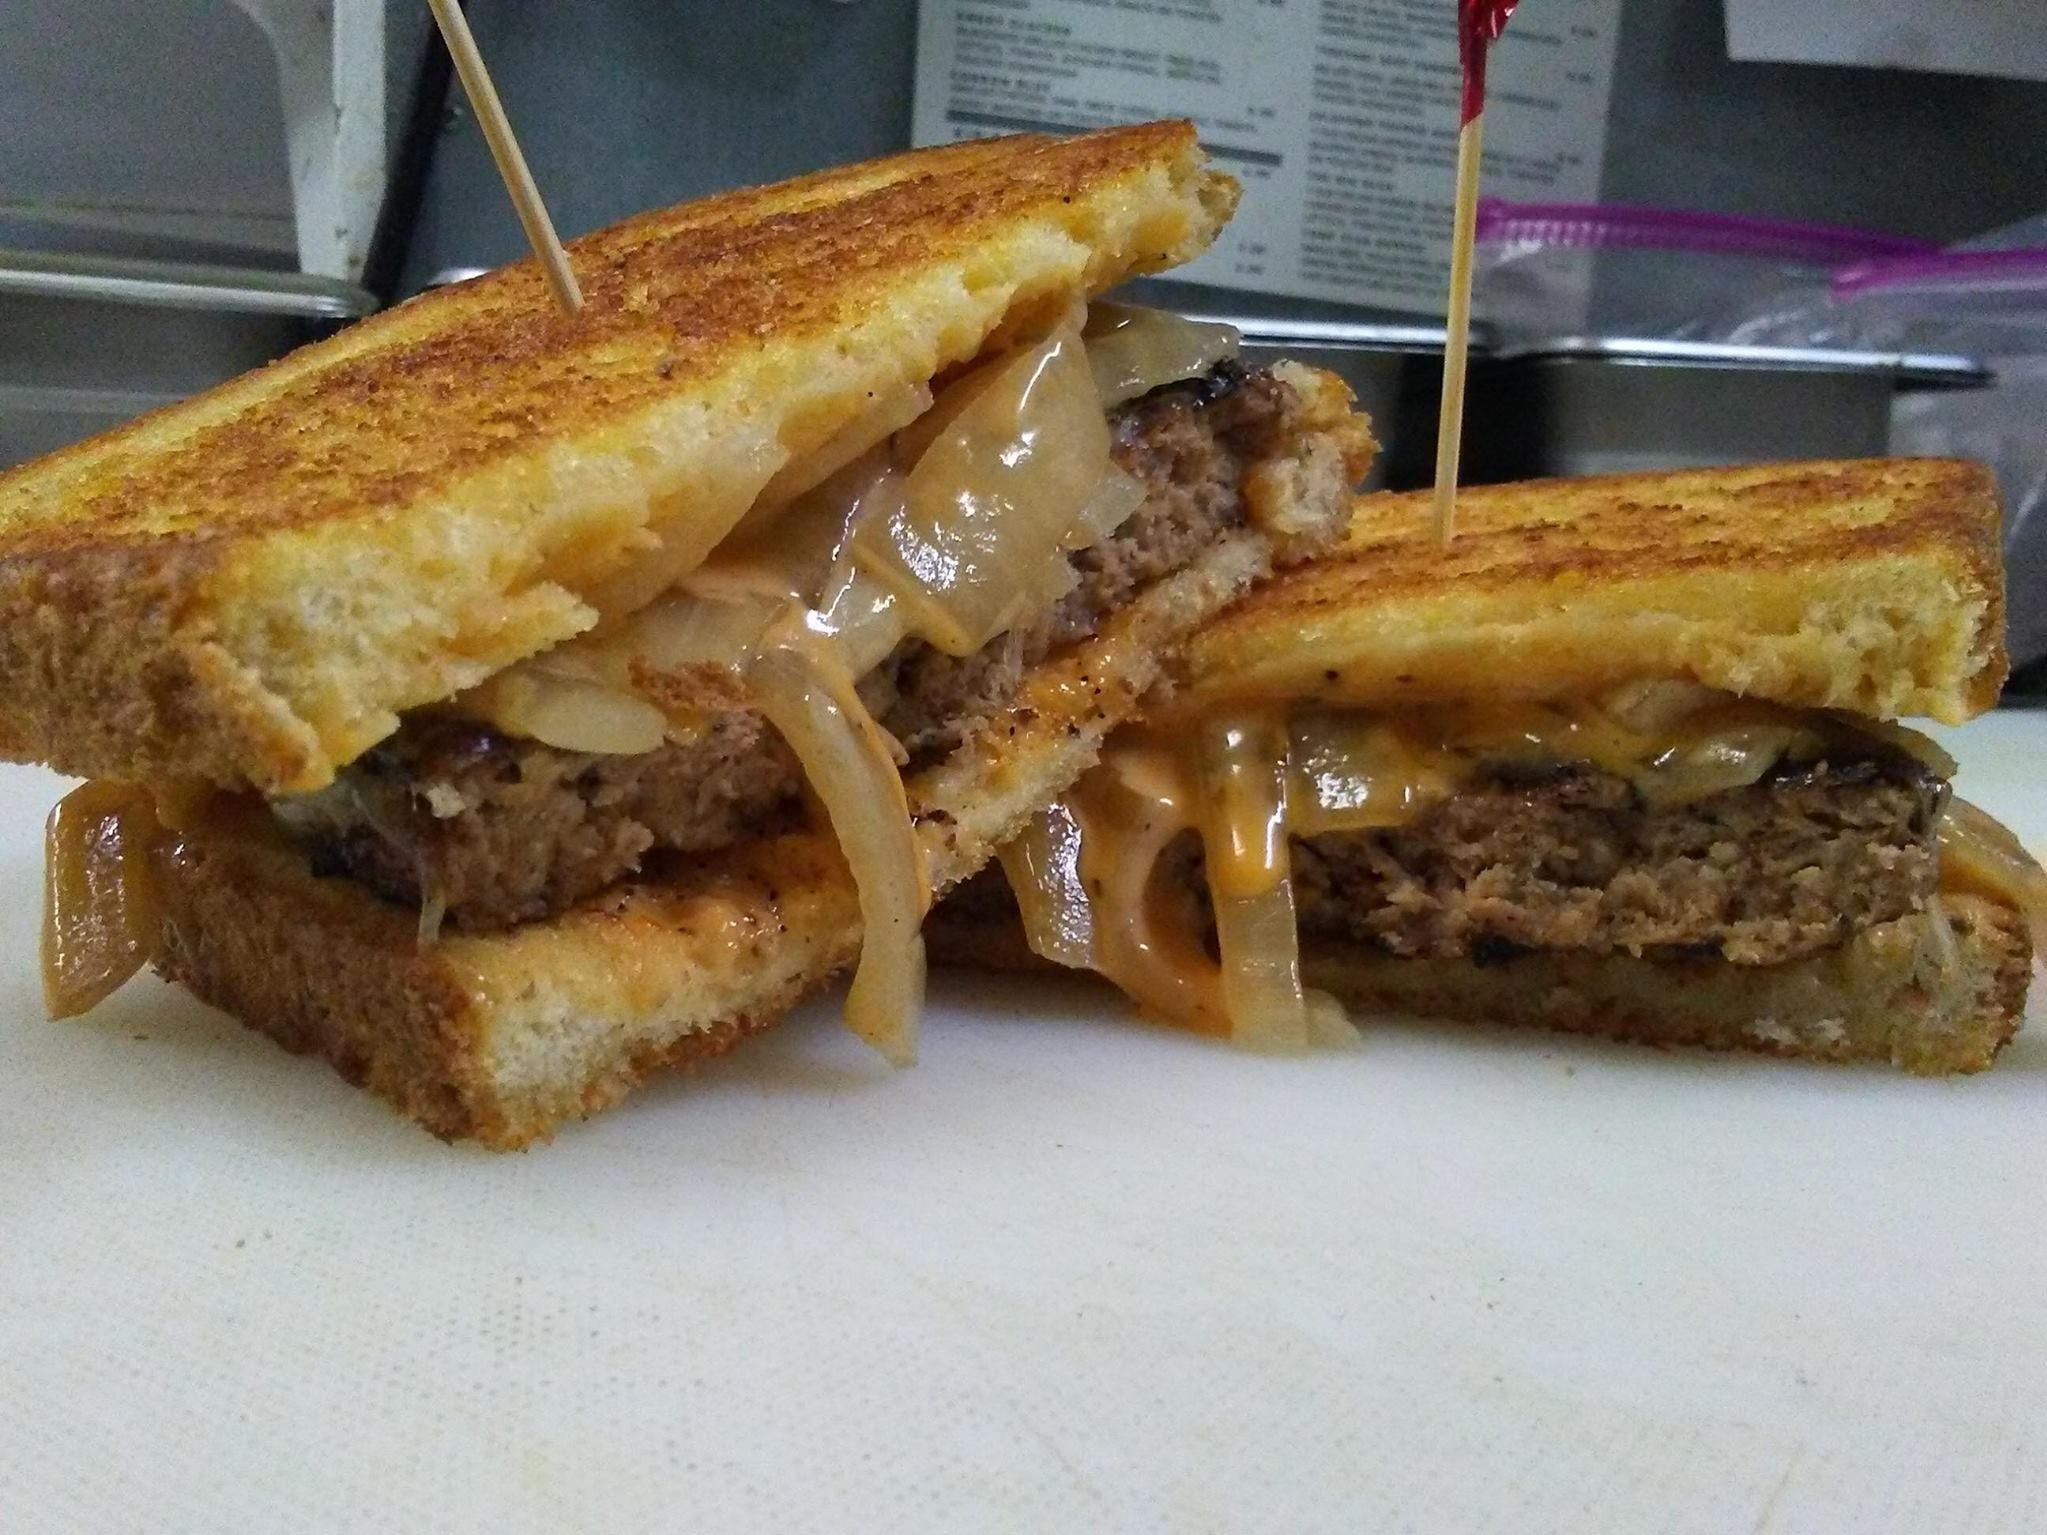 This Patty Melt can be found at the Silo House restaurant at 2503 Martin Luther King Blvd until Dec. 22, 2018. It will return in February 1, 2019 at the new Helen's Bistro and Bakery.